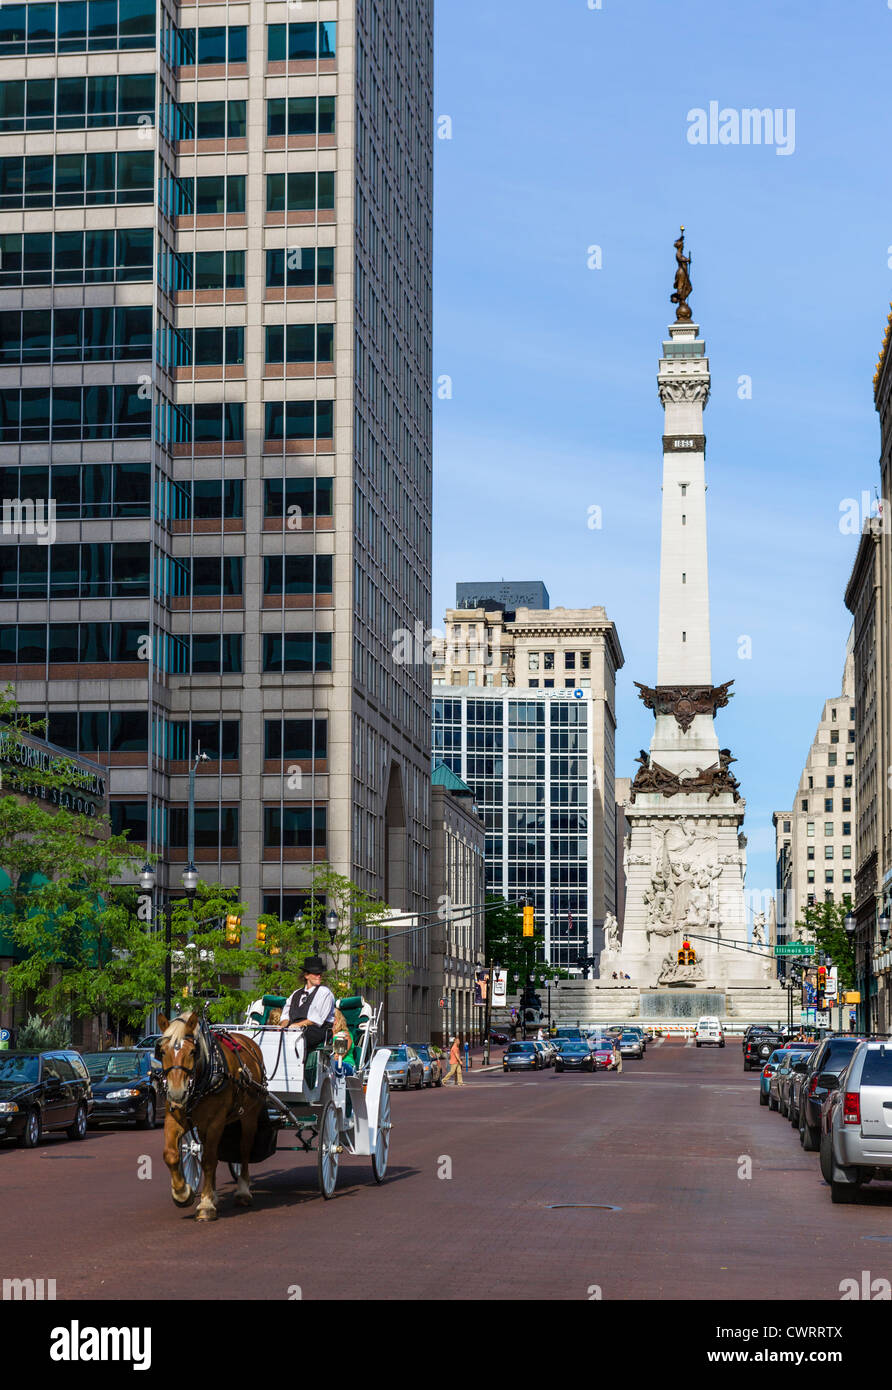 Horsedrawn carriage on W Market Street with Soldiers & Sailors Monument in Monument Circle behind, Indianapolis, - Stock Image